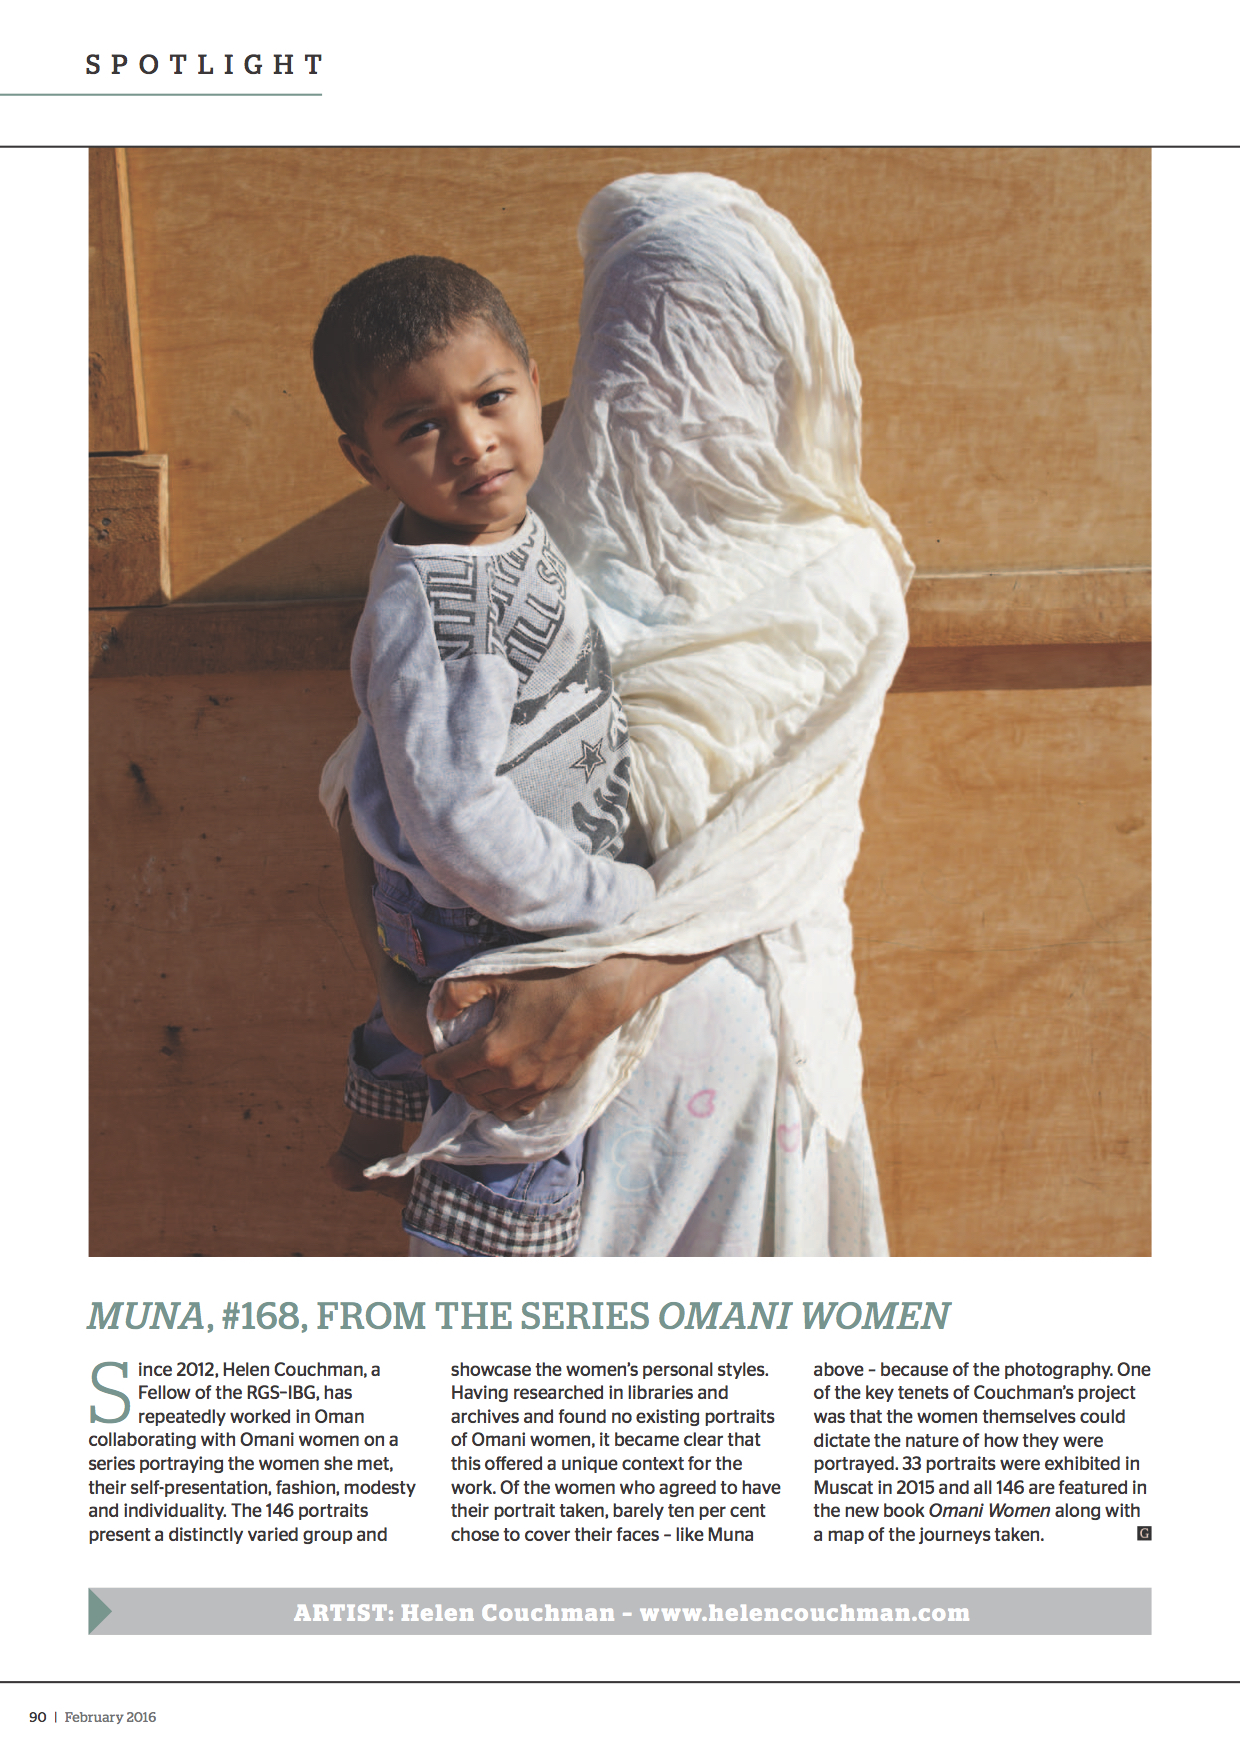 Muna from the Omani Women Series for the Geographical Magazine GE090_FEB16